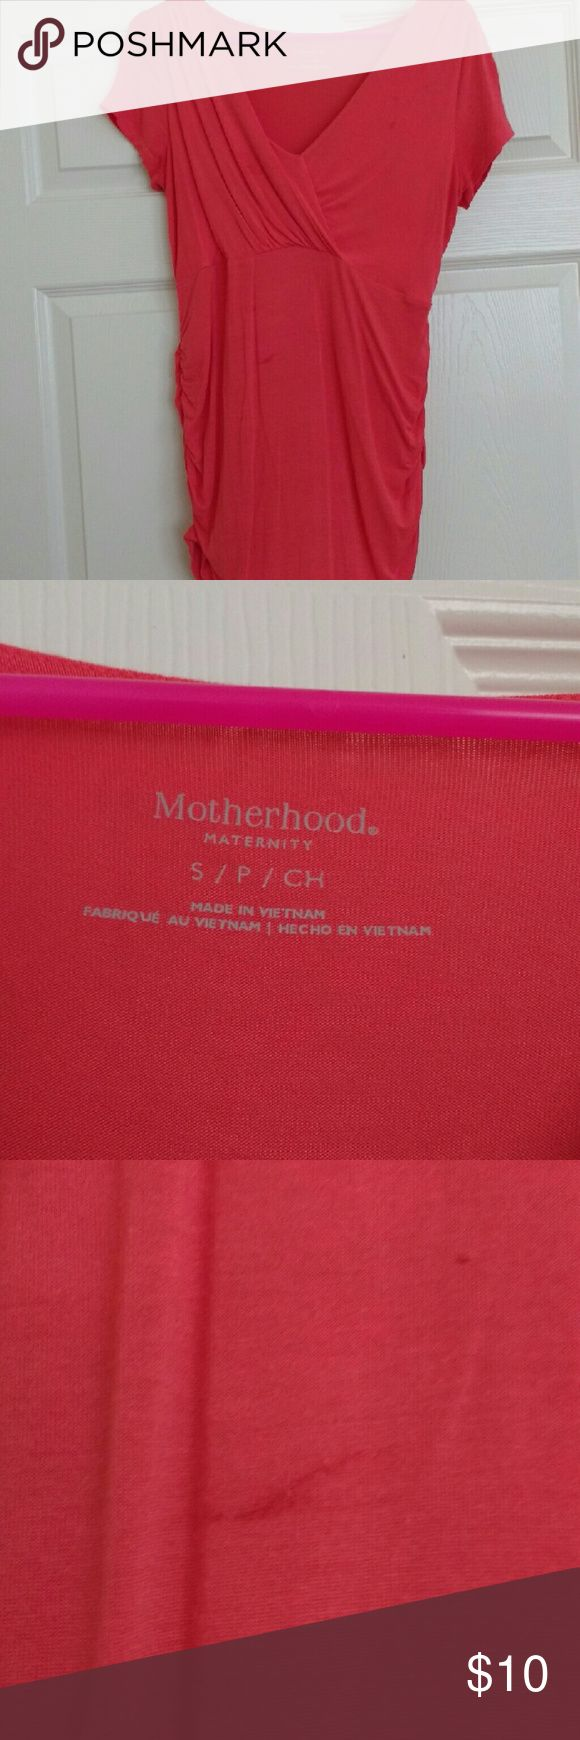 Maternity top Orange maternity top. Perfect for the summer. Has a few marks shown in the pics Motherhood Maternity Tops